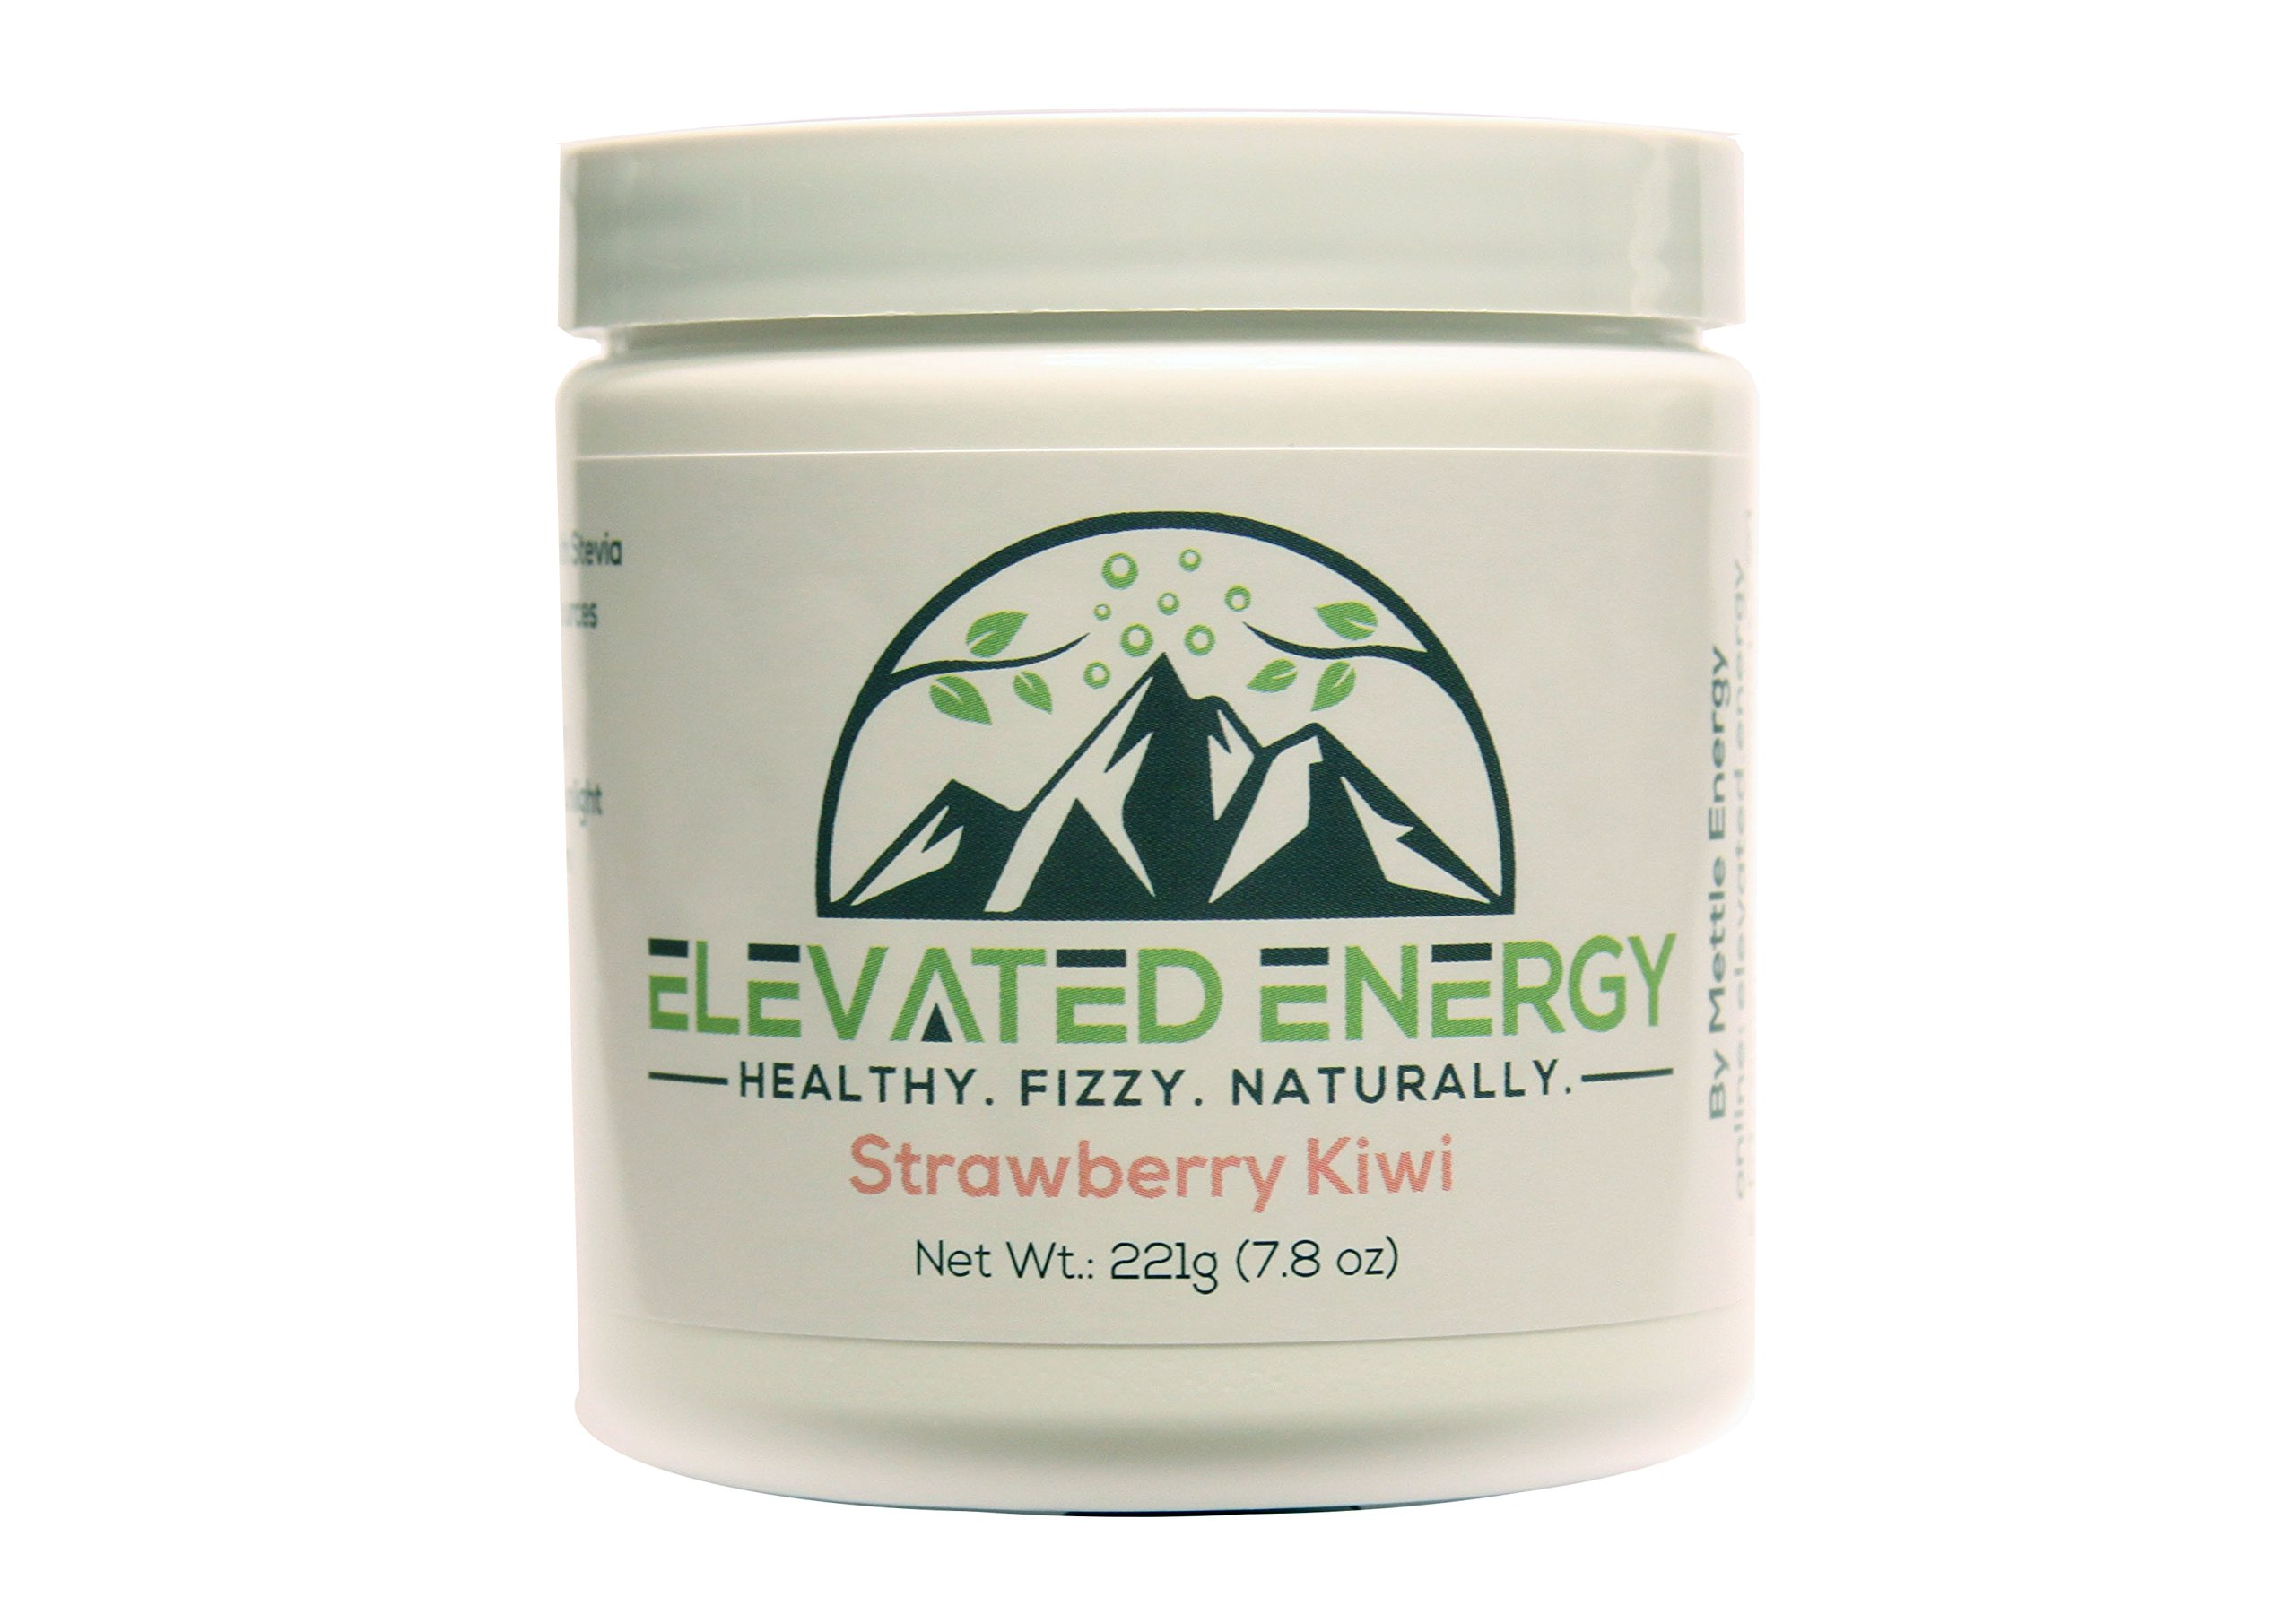 Healthy Energy Drink Powder - Stevia & Natural Caffeine | Elevated Energy Fizzy Drink Mix | Strawberry Kiwi | 30 Servings